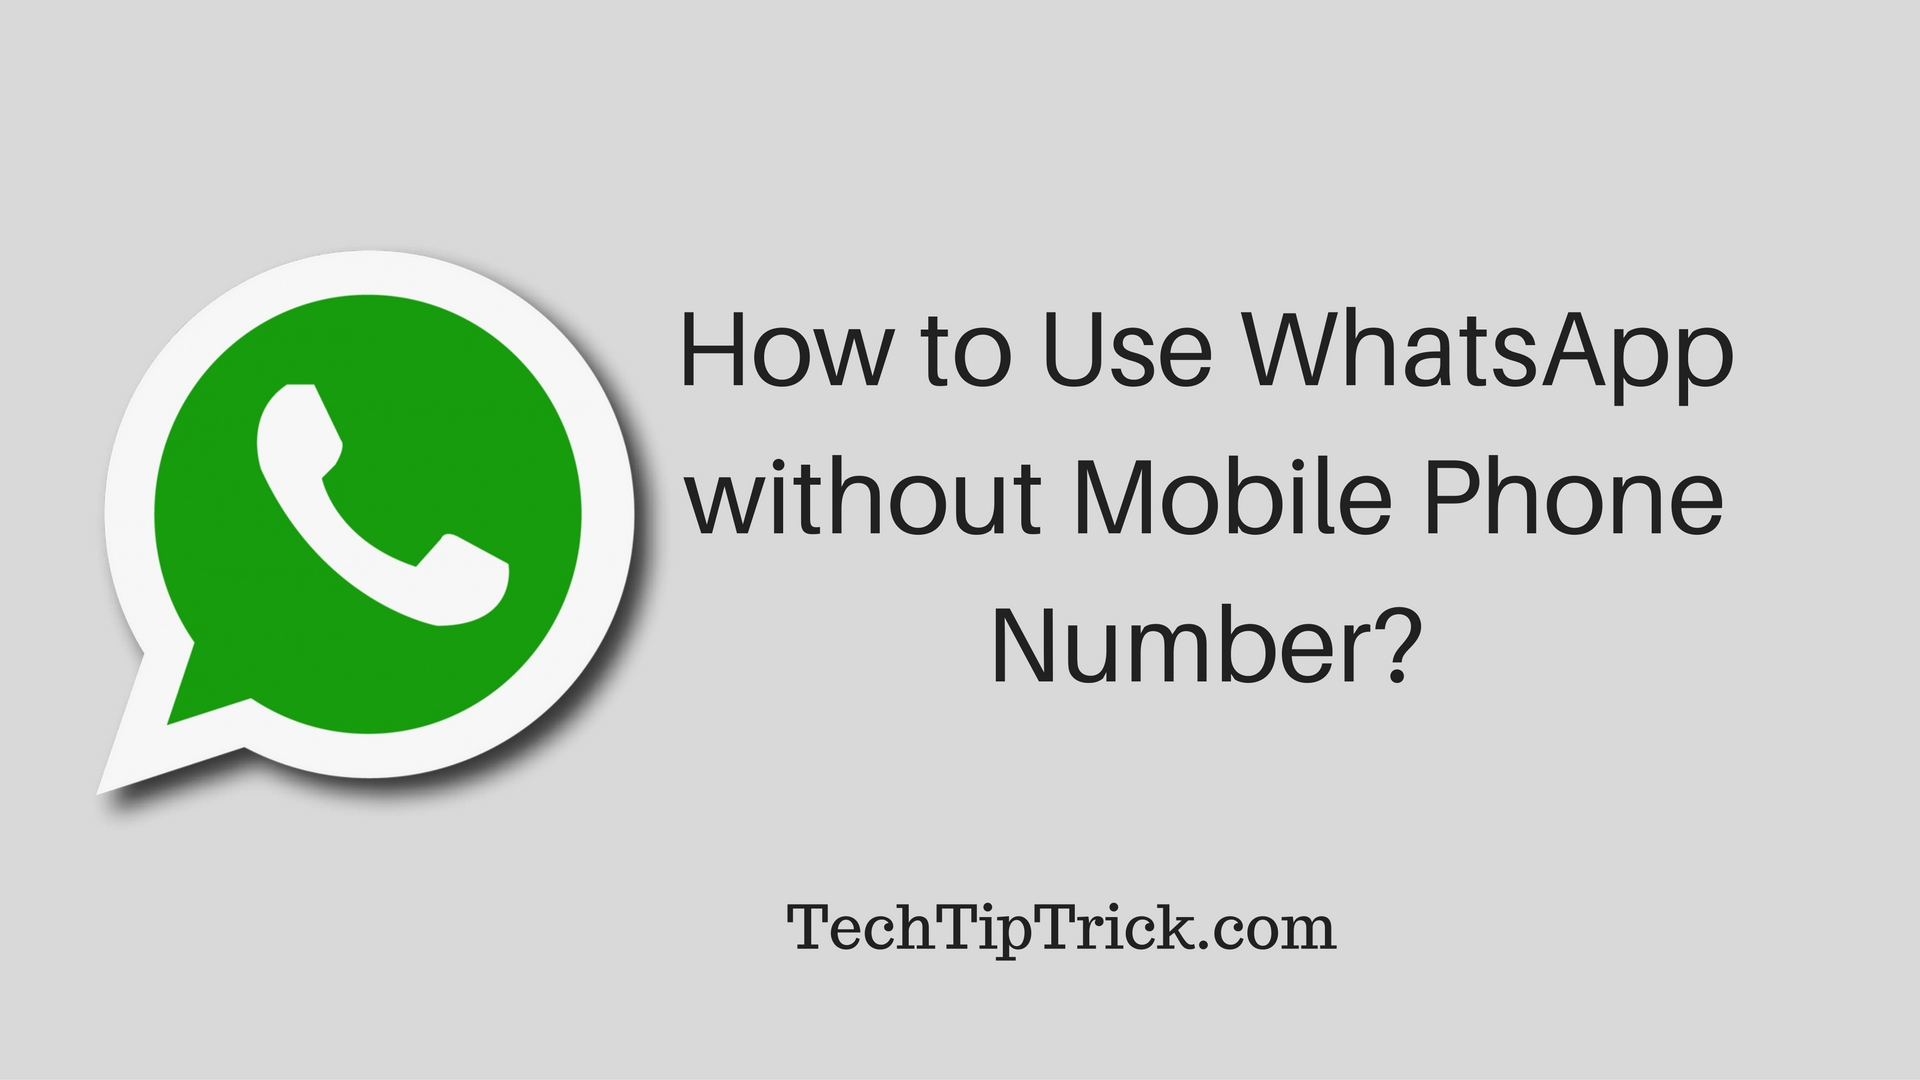 Use WhatsApp without Mobile Phone Number